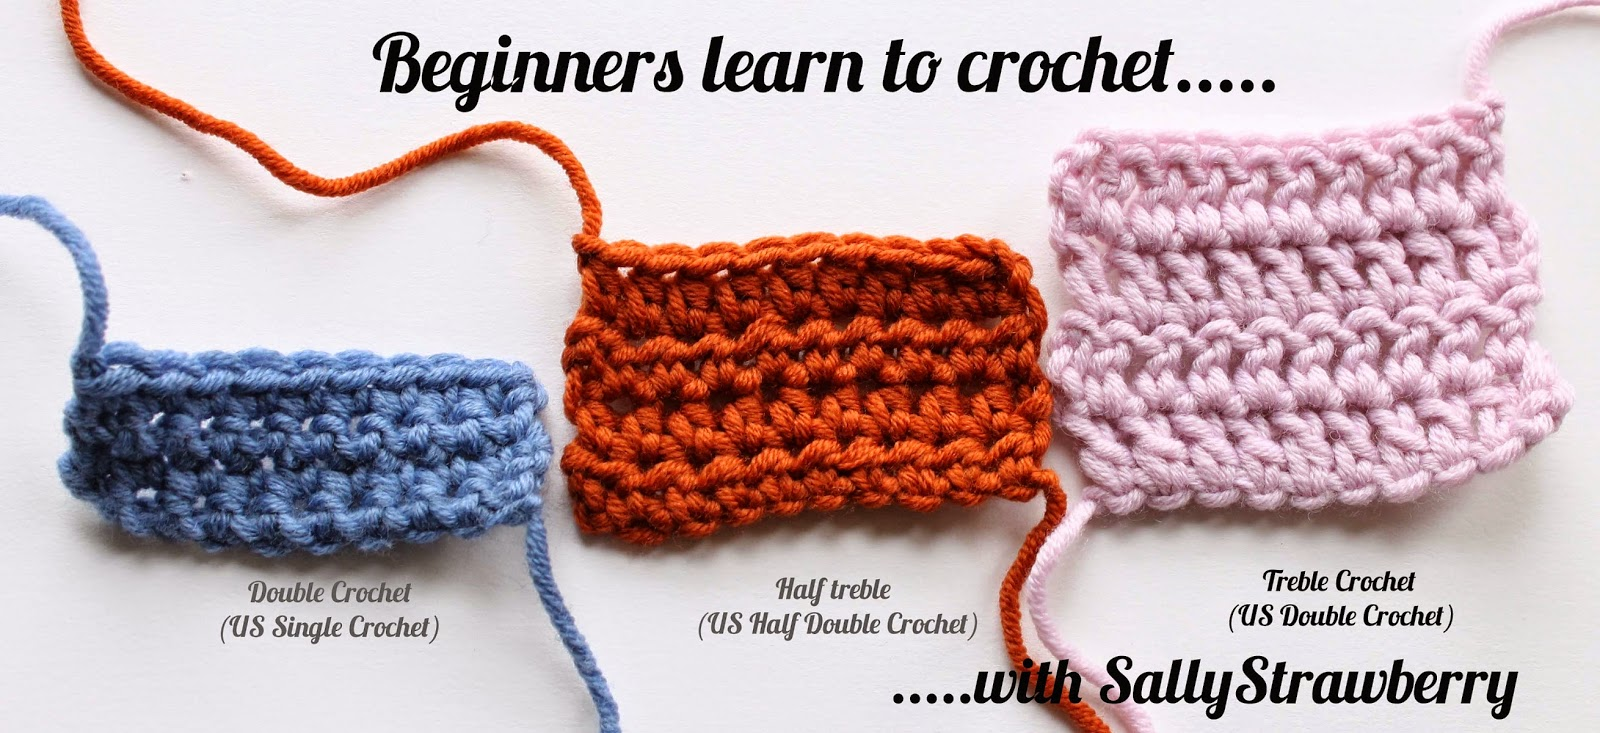 Crochet Basics : Beginners+Learn+to+Crochet-+treble+Crochet+title+page.jpg